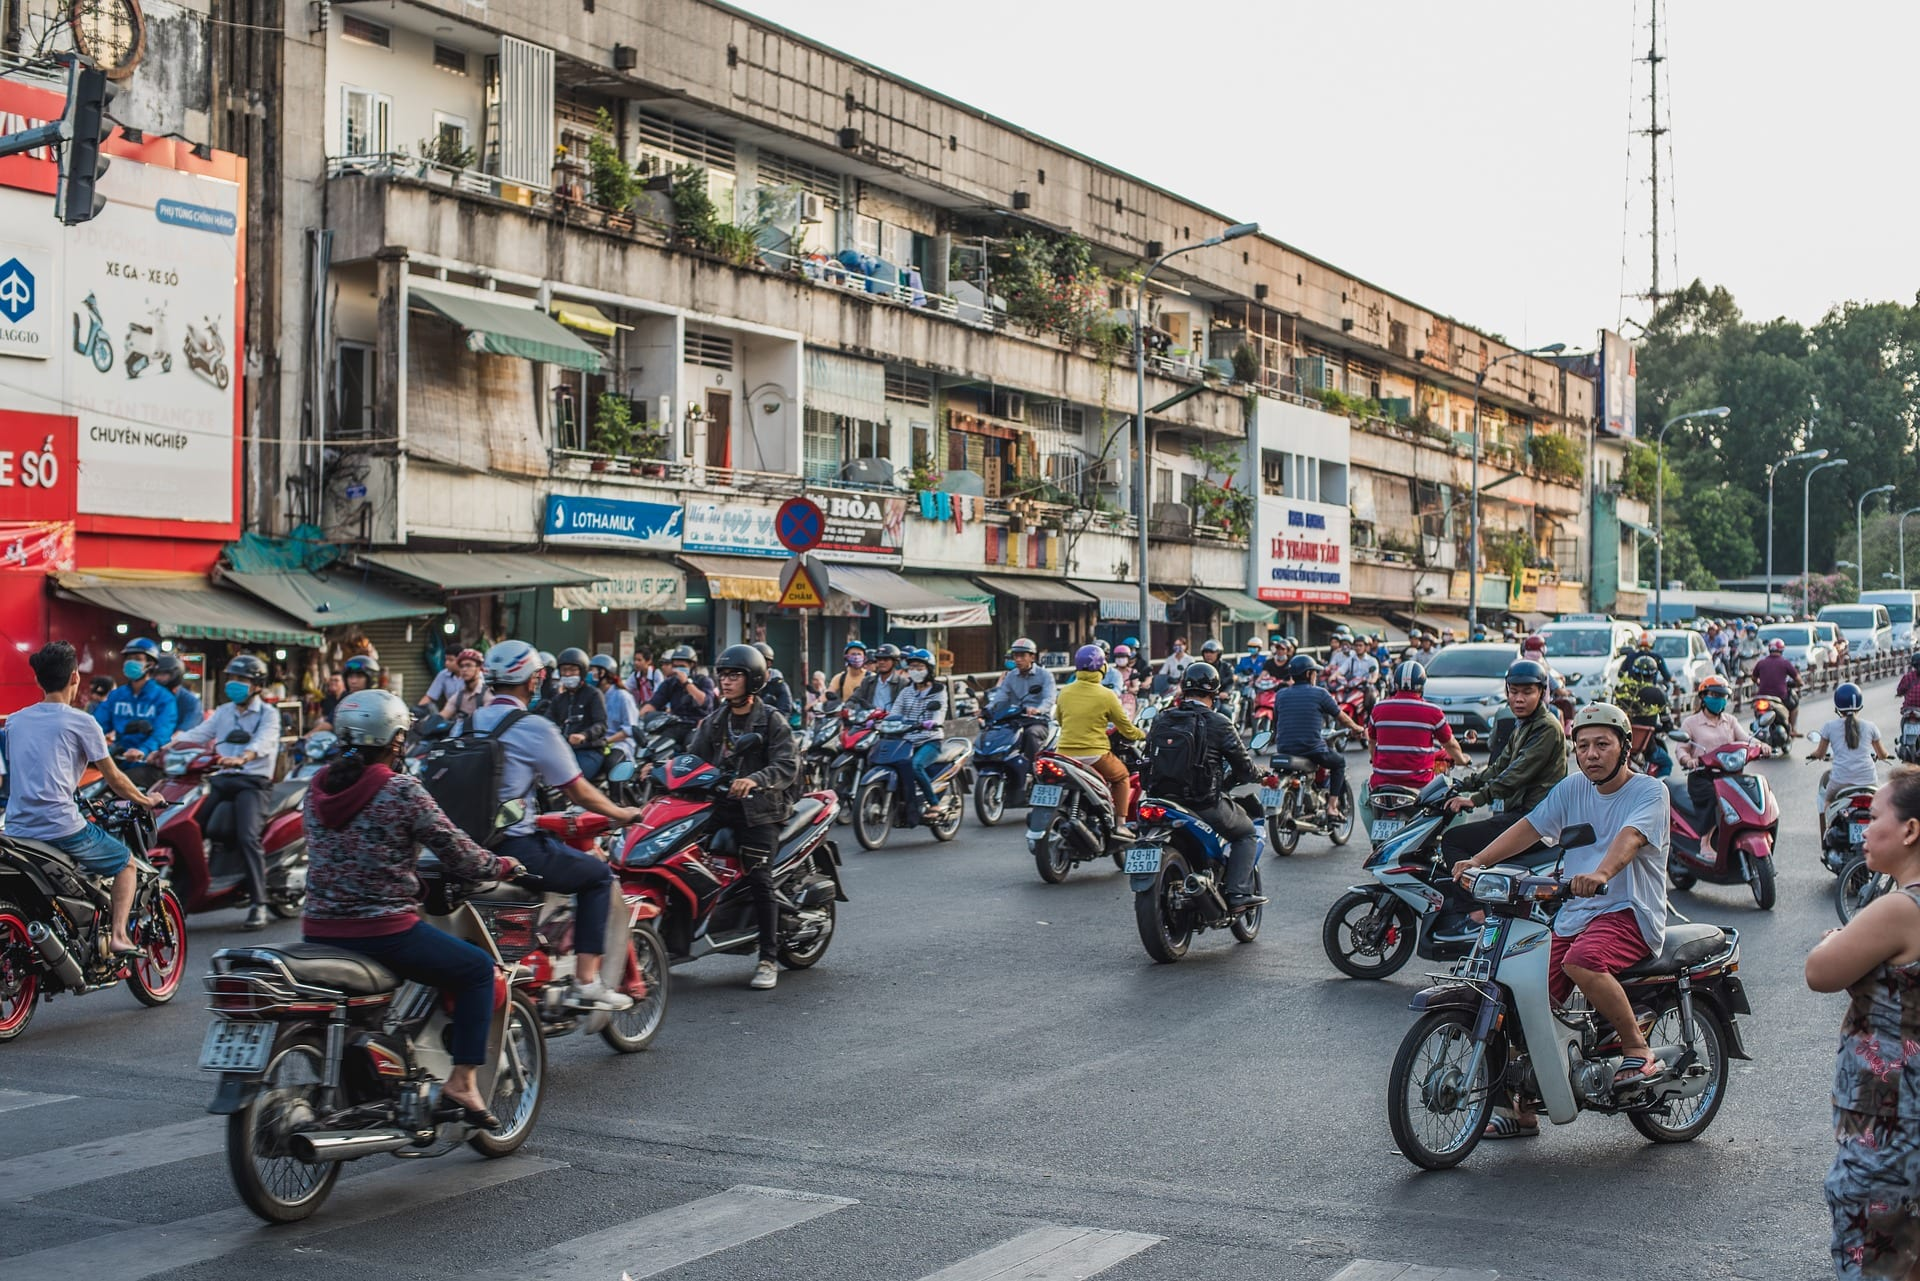 Motorcycle traffic in Saigon